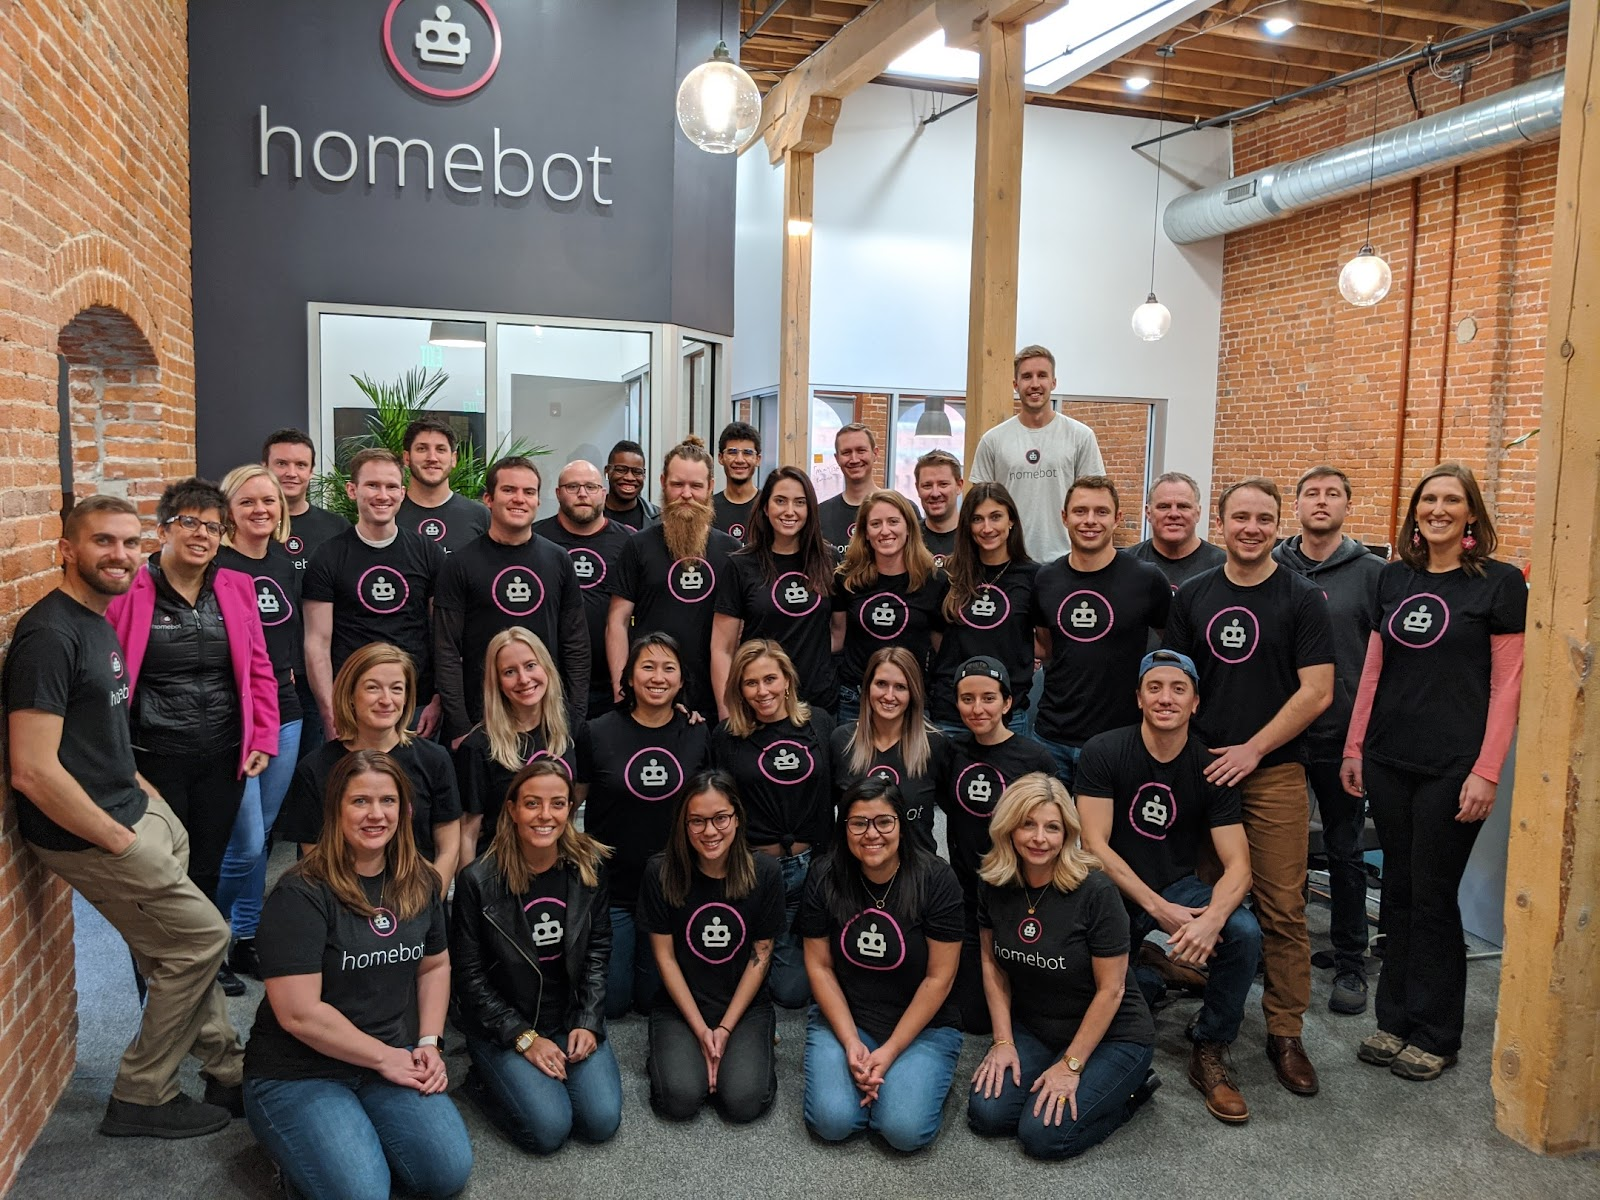 The Homebot Team